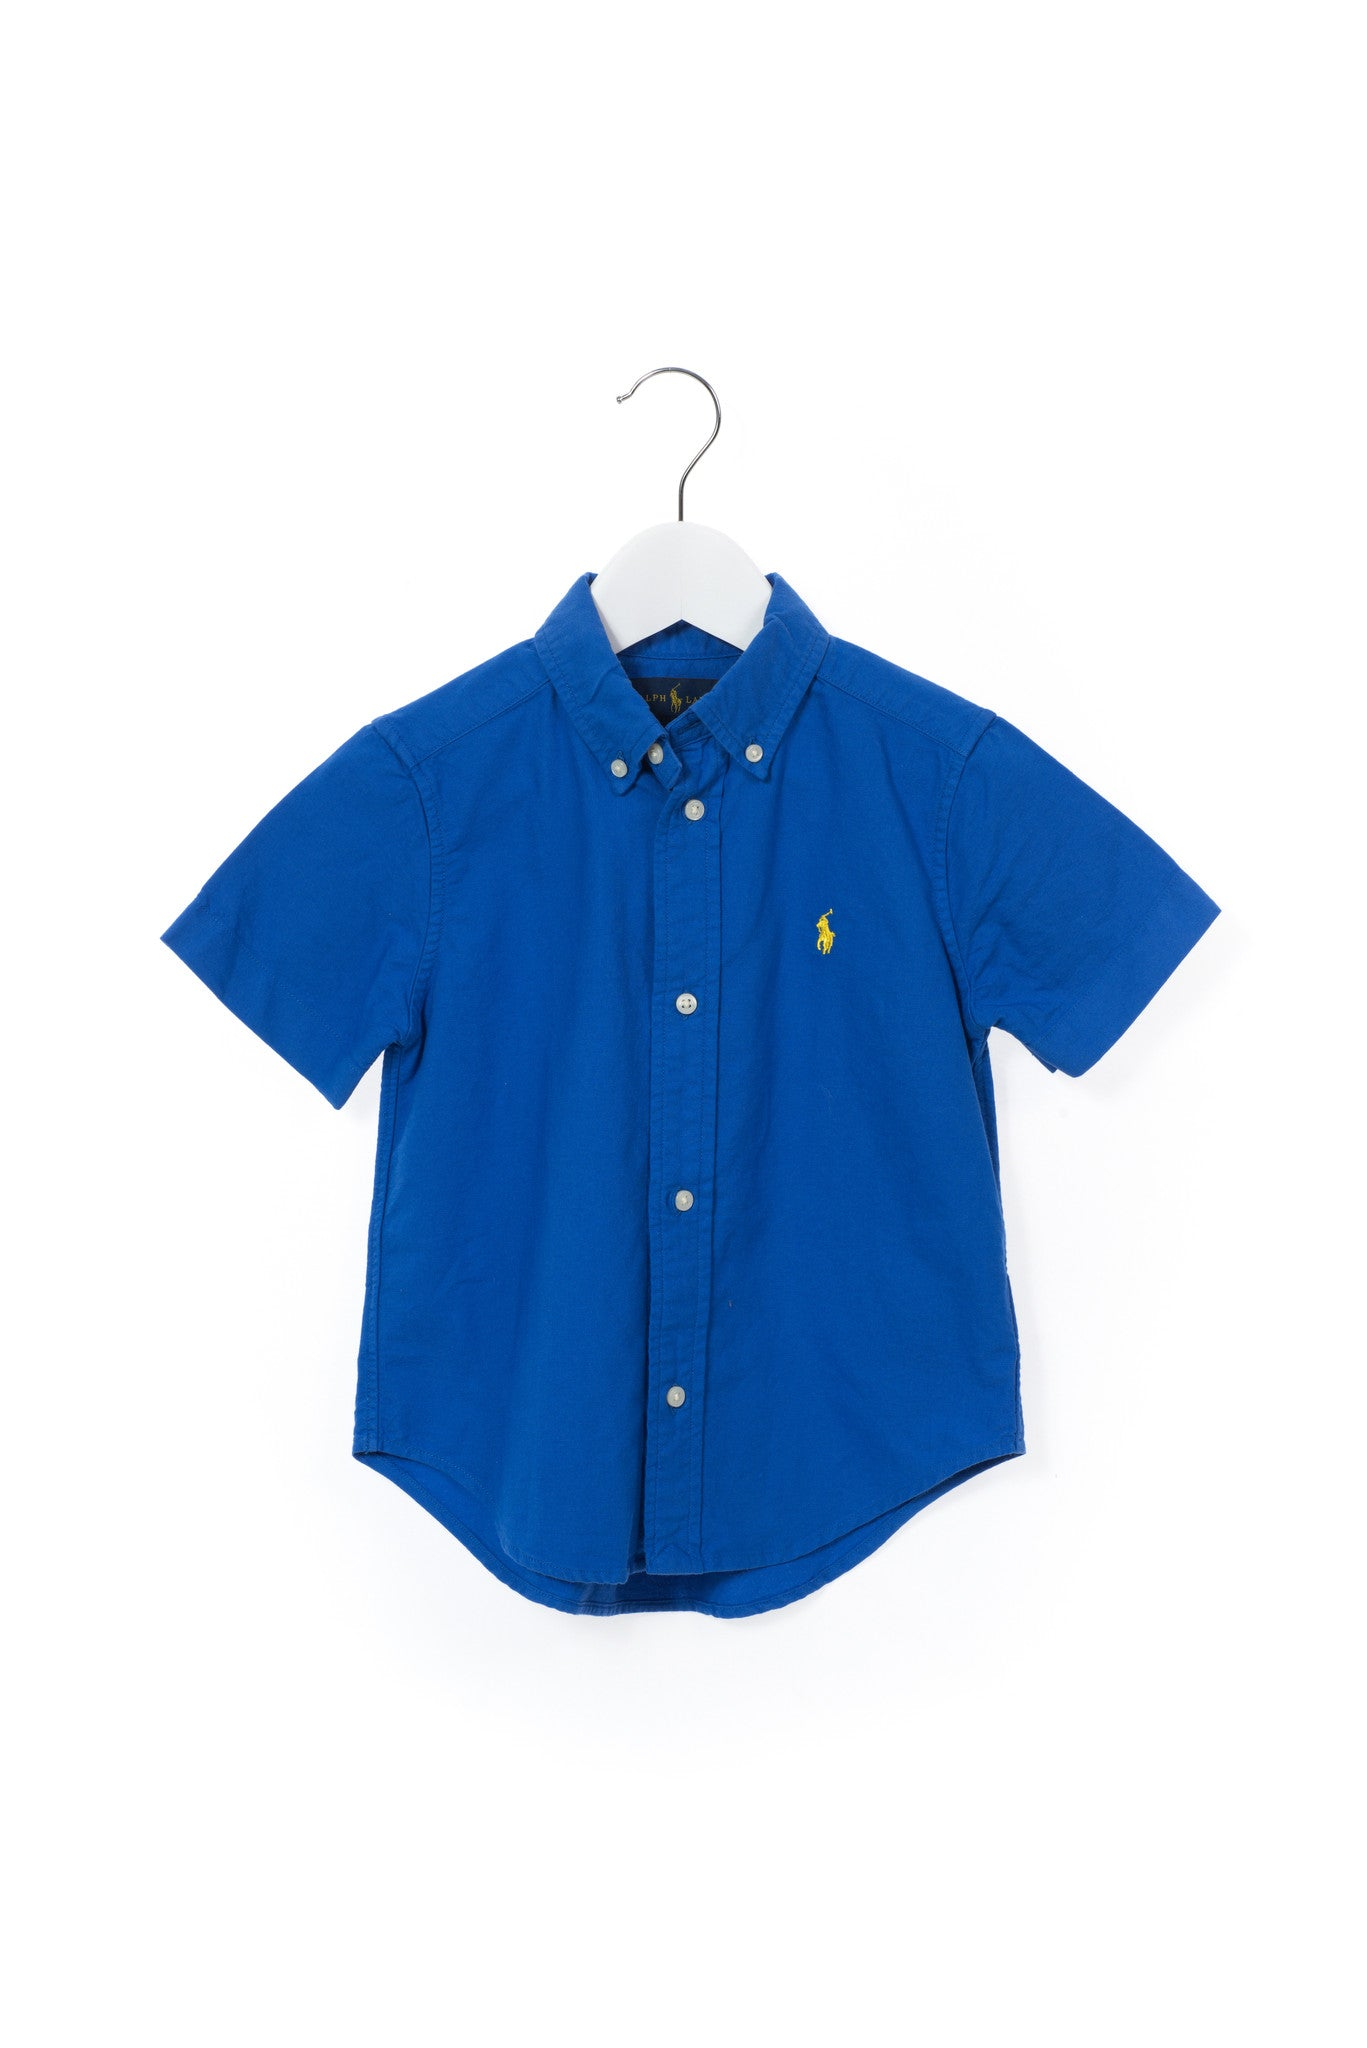 Shirt 3T, Polo Ralph Lauren at Retykle - Online Baby & Kids Clothing Up to 90% Off